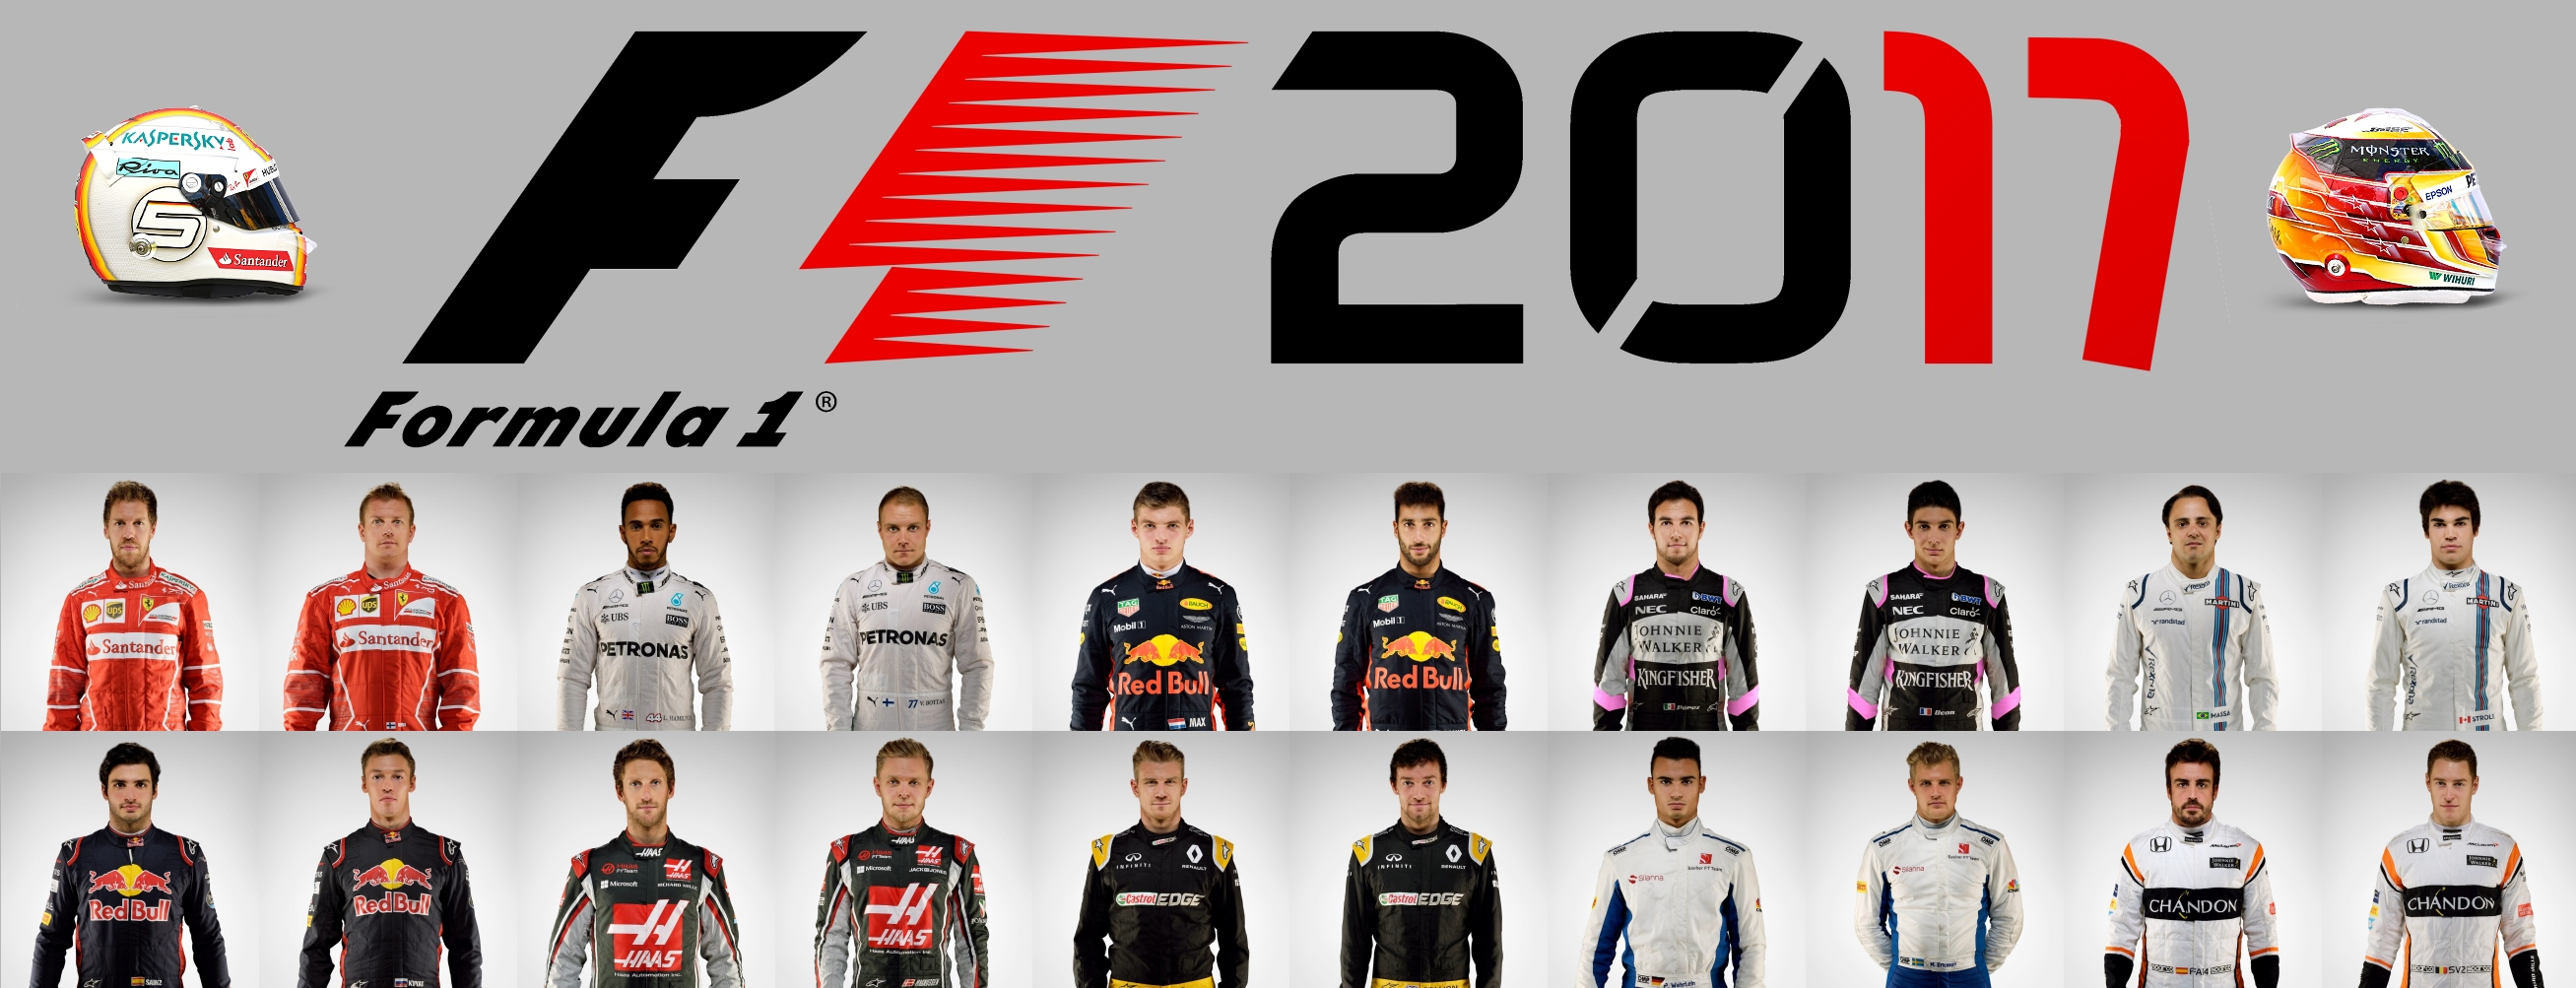 f1 2017 drivers photos helmets livery pics racedepartment. Black Bedroom Furniture Sets. Home Design Ideas